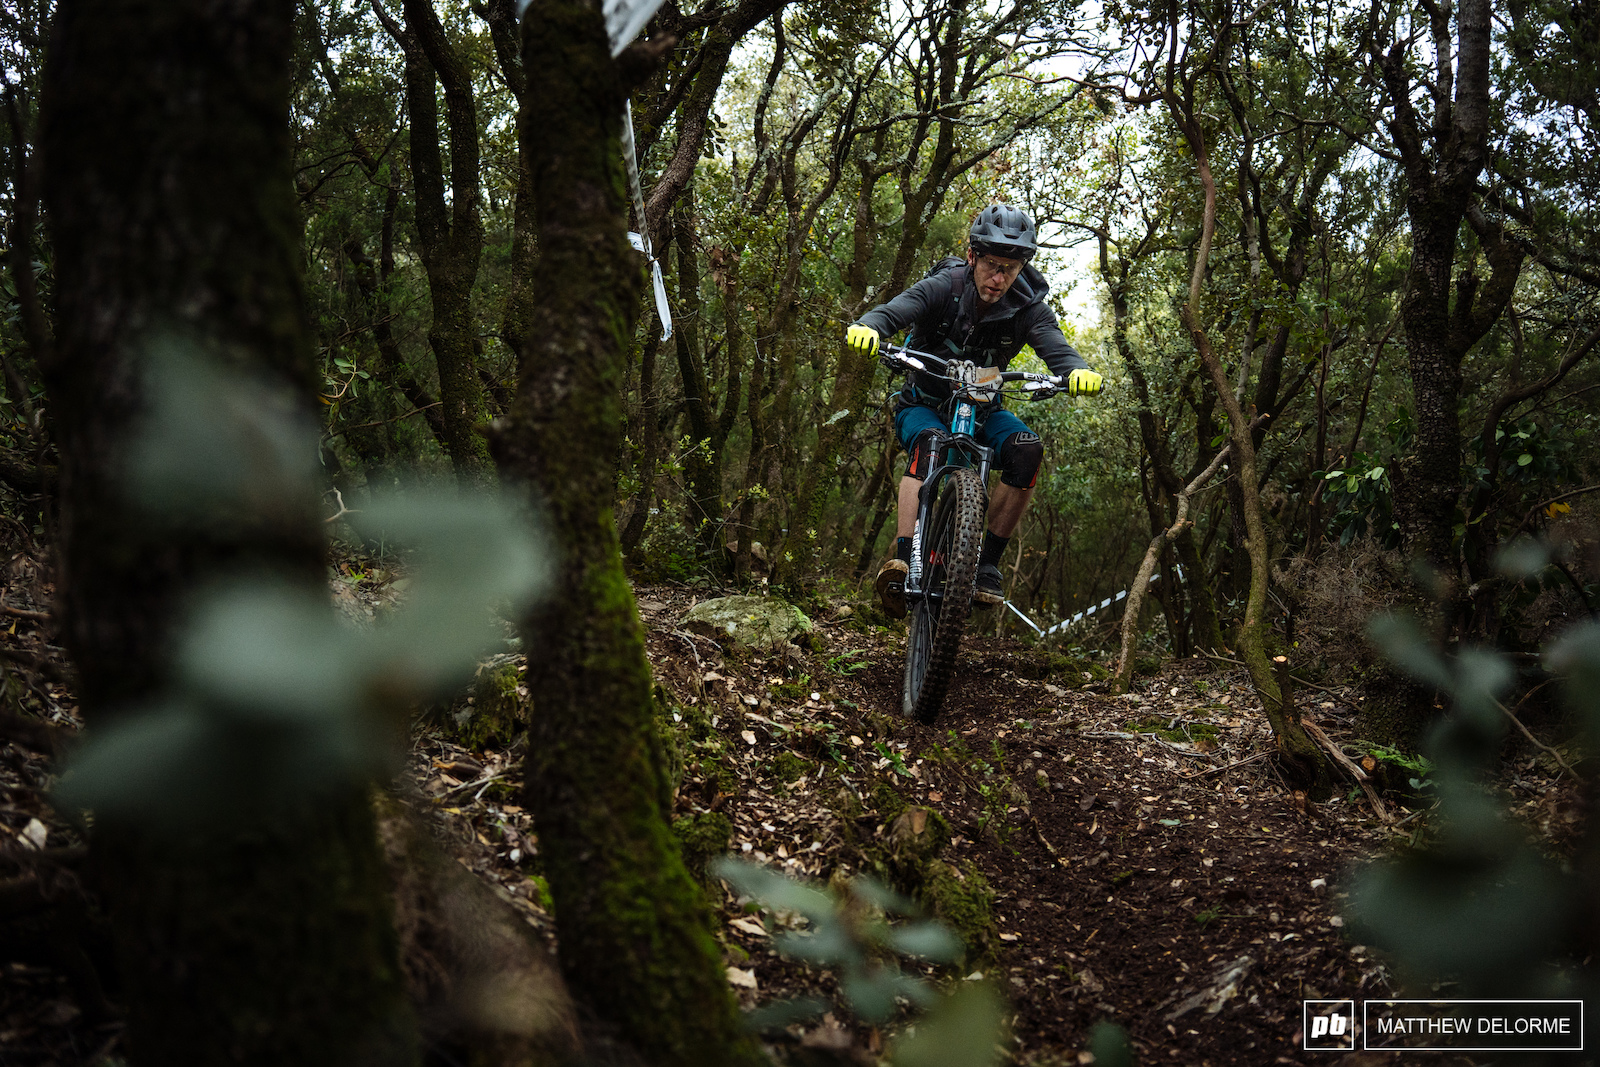 There is some nice loamy fresh sections out there.